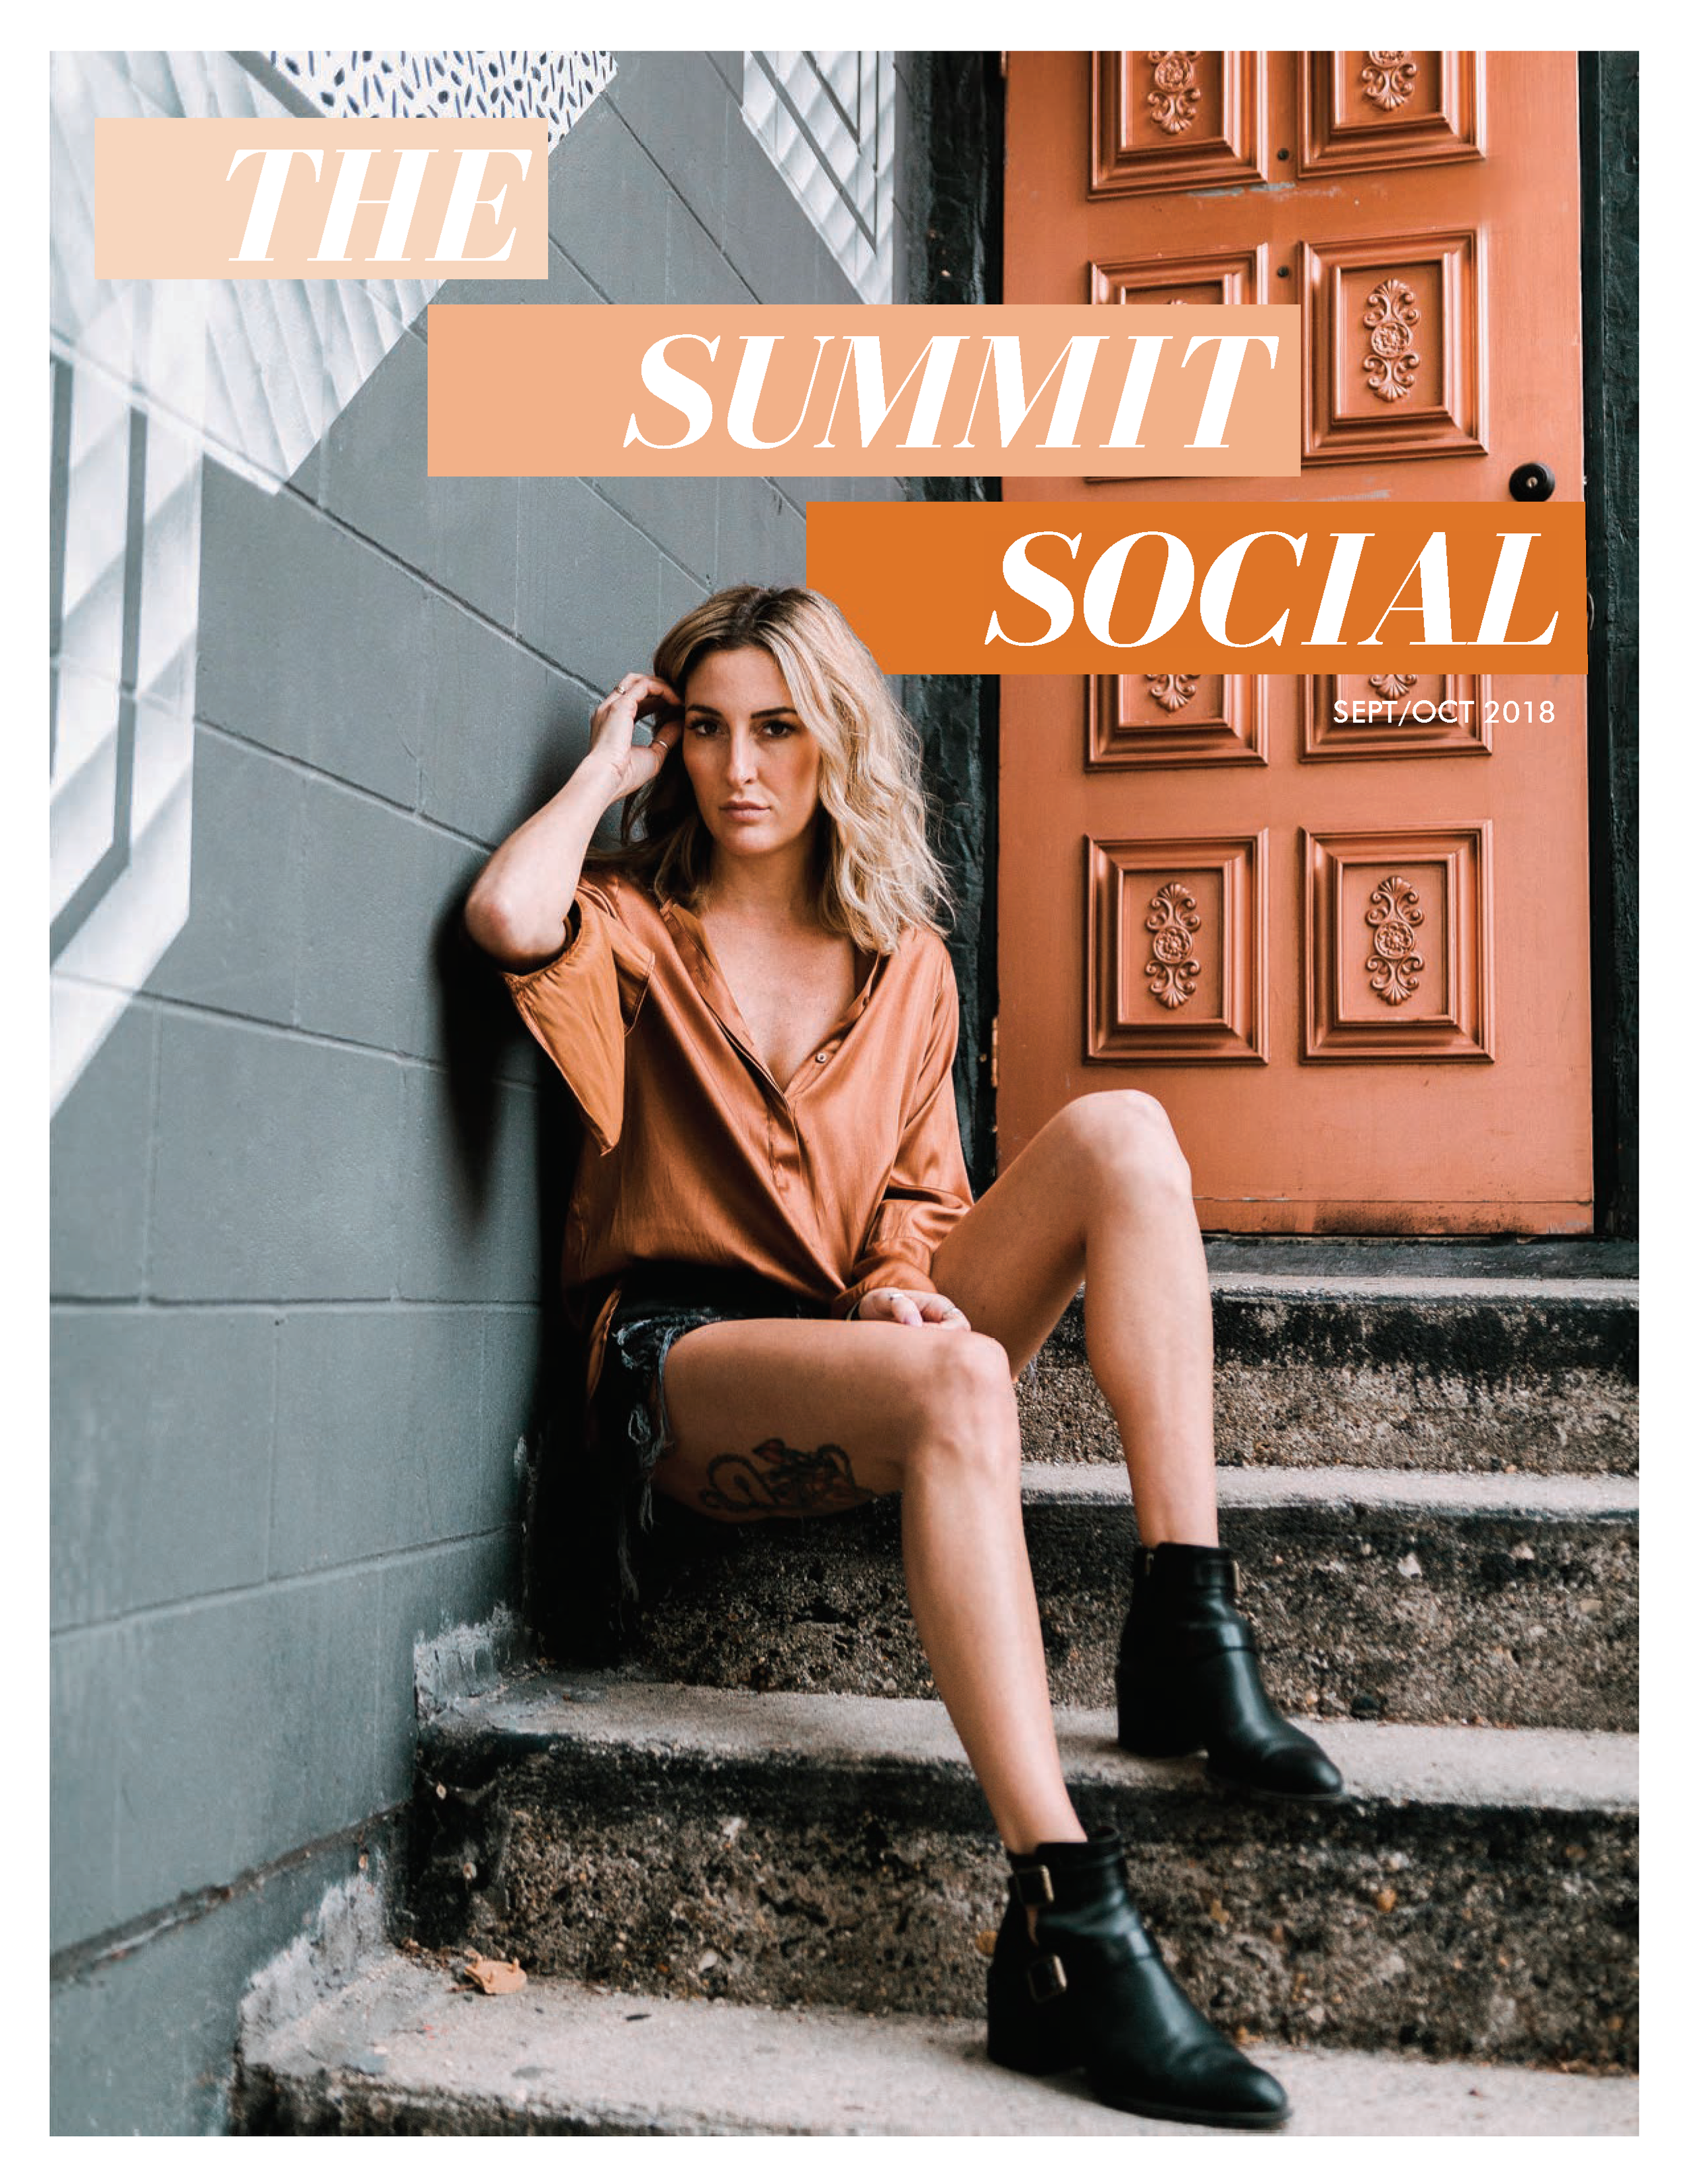 The Summit Social Sept Oct 2018 web_Page_1.png